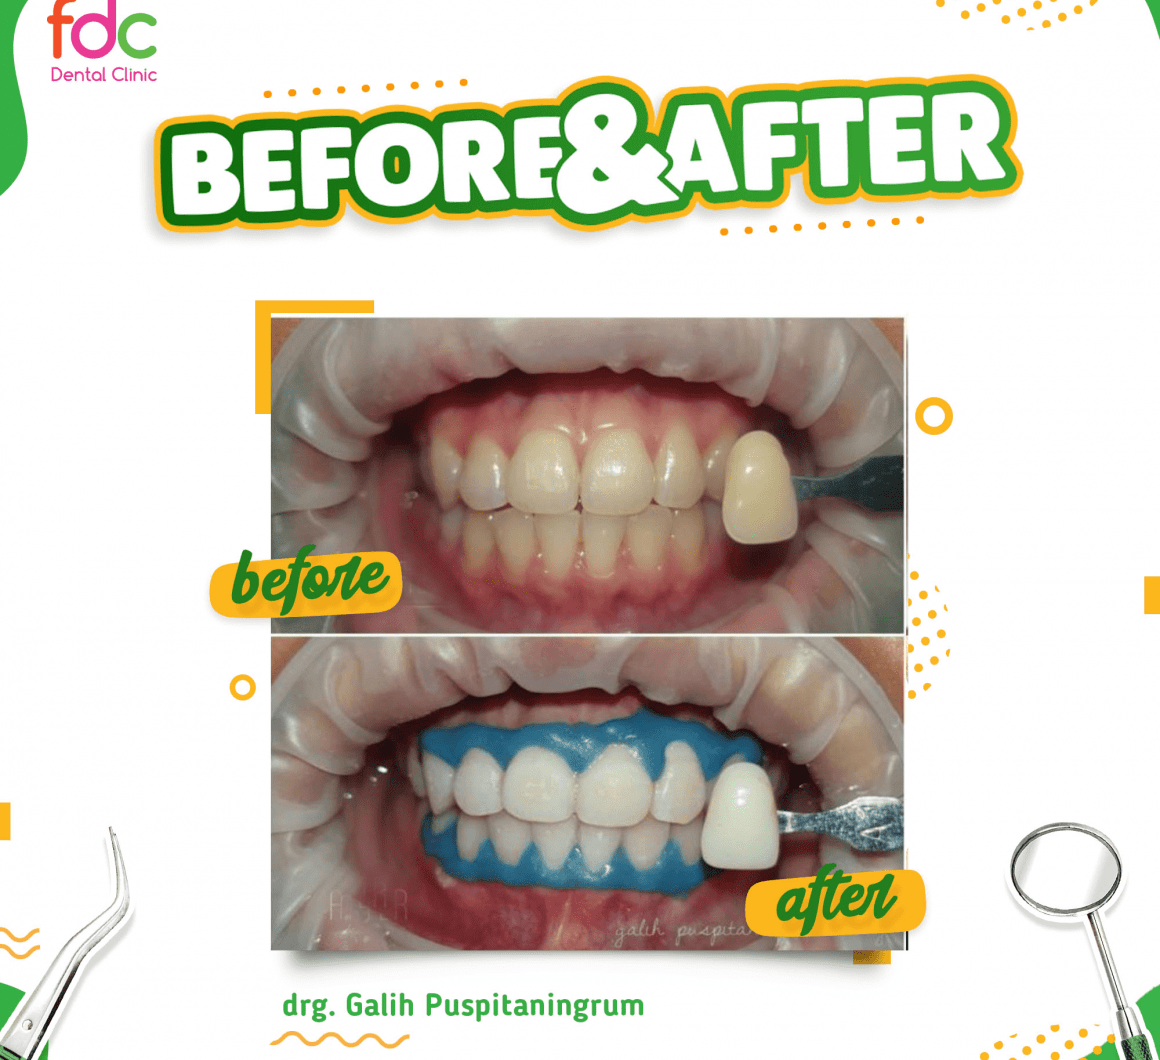 Before After Bleaching FDC Dental Clinic